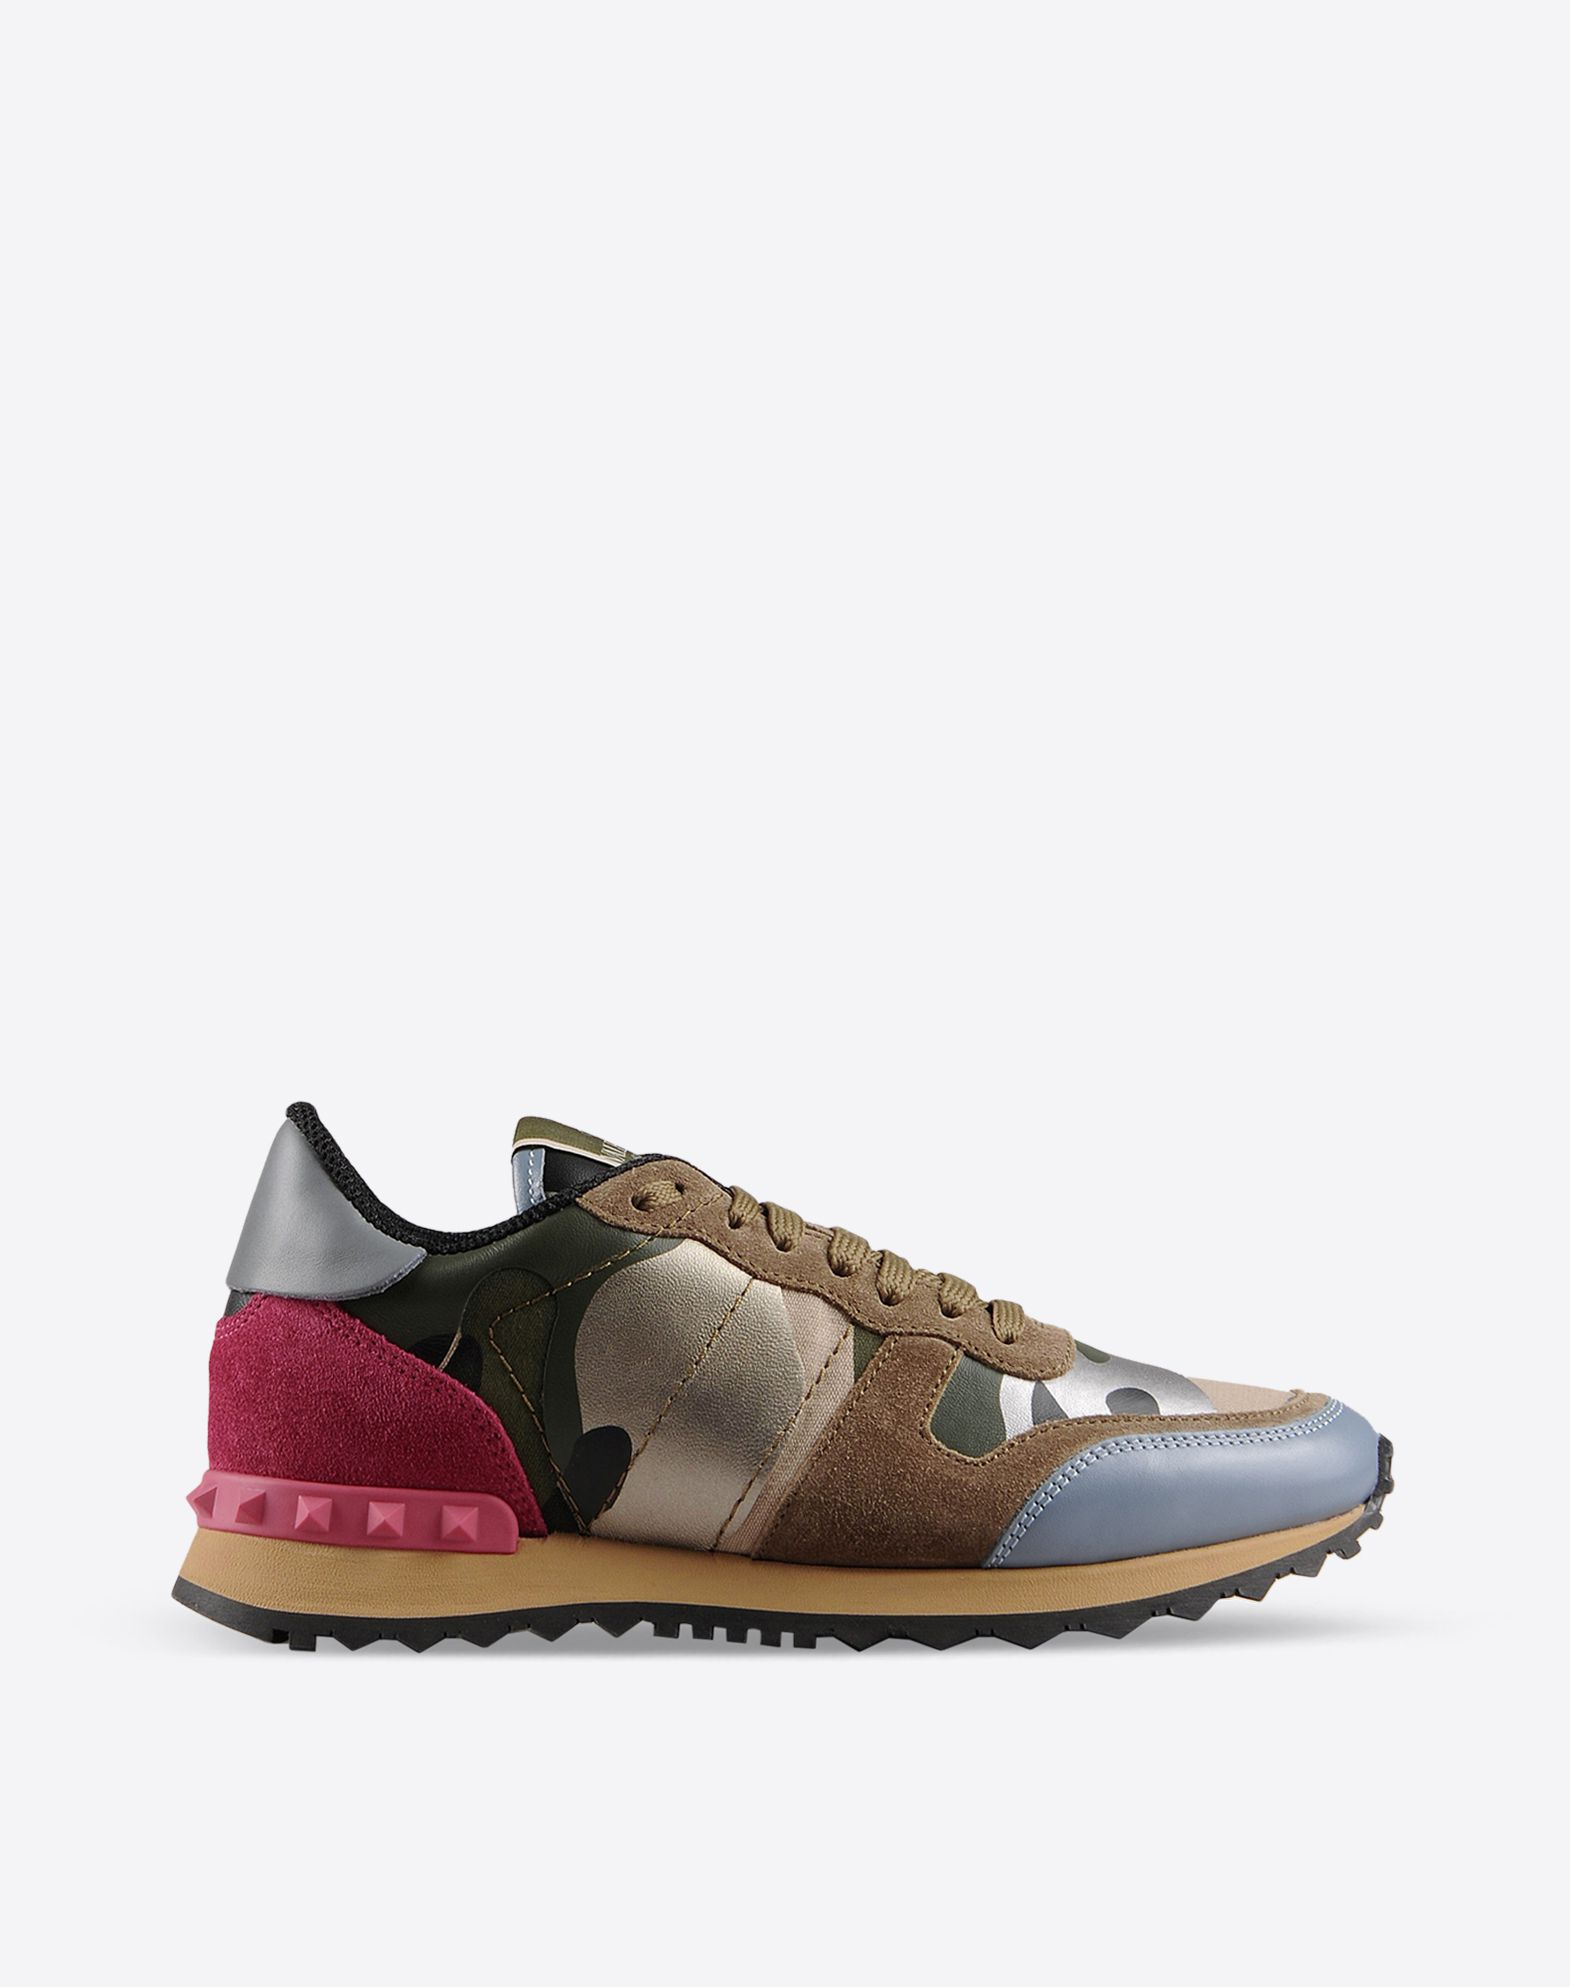 valentino garavani rockrunner camouflage sneakers for women valentino online boutique. Black Bedroom Furniture Sets. Home Design Ideas